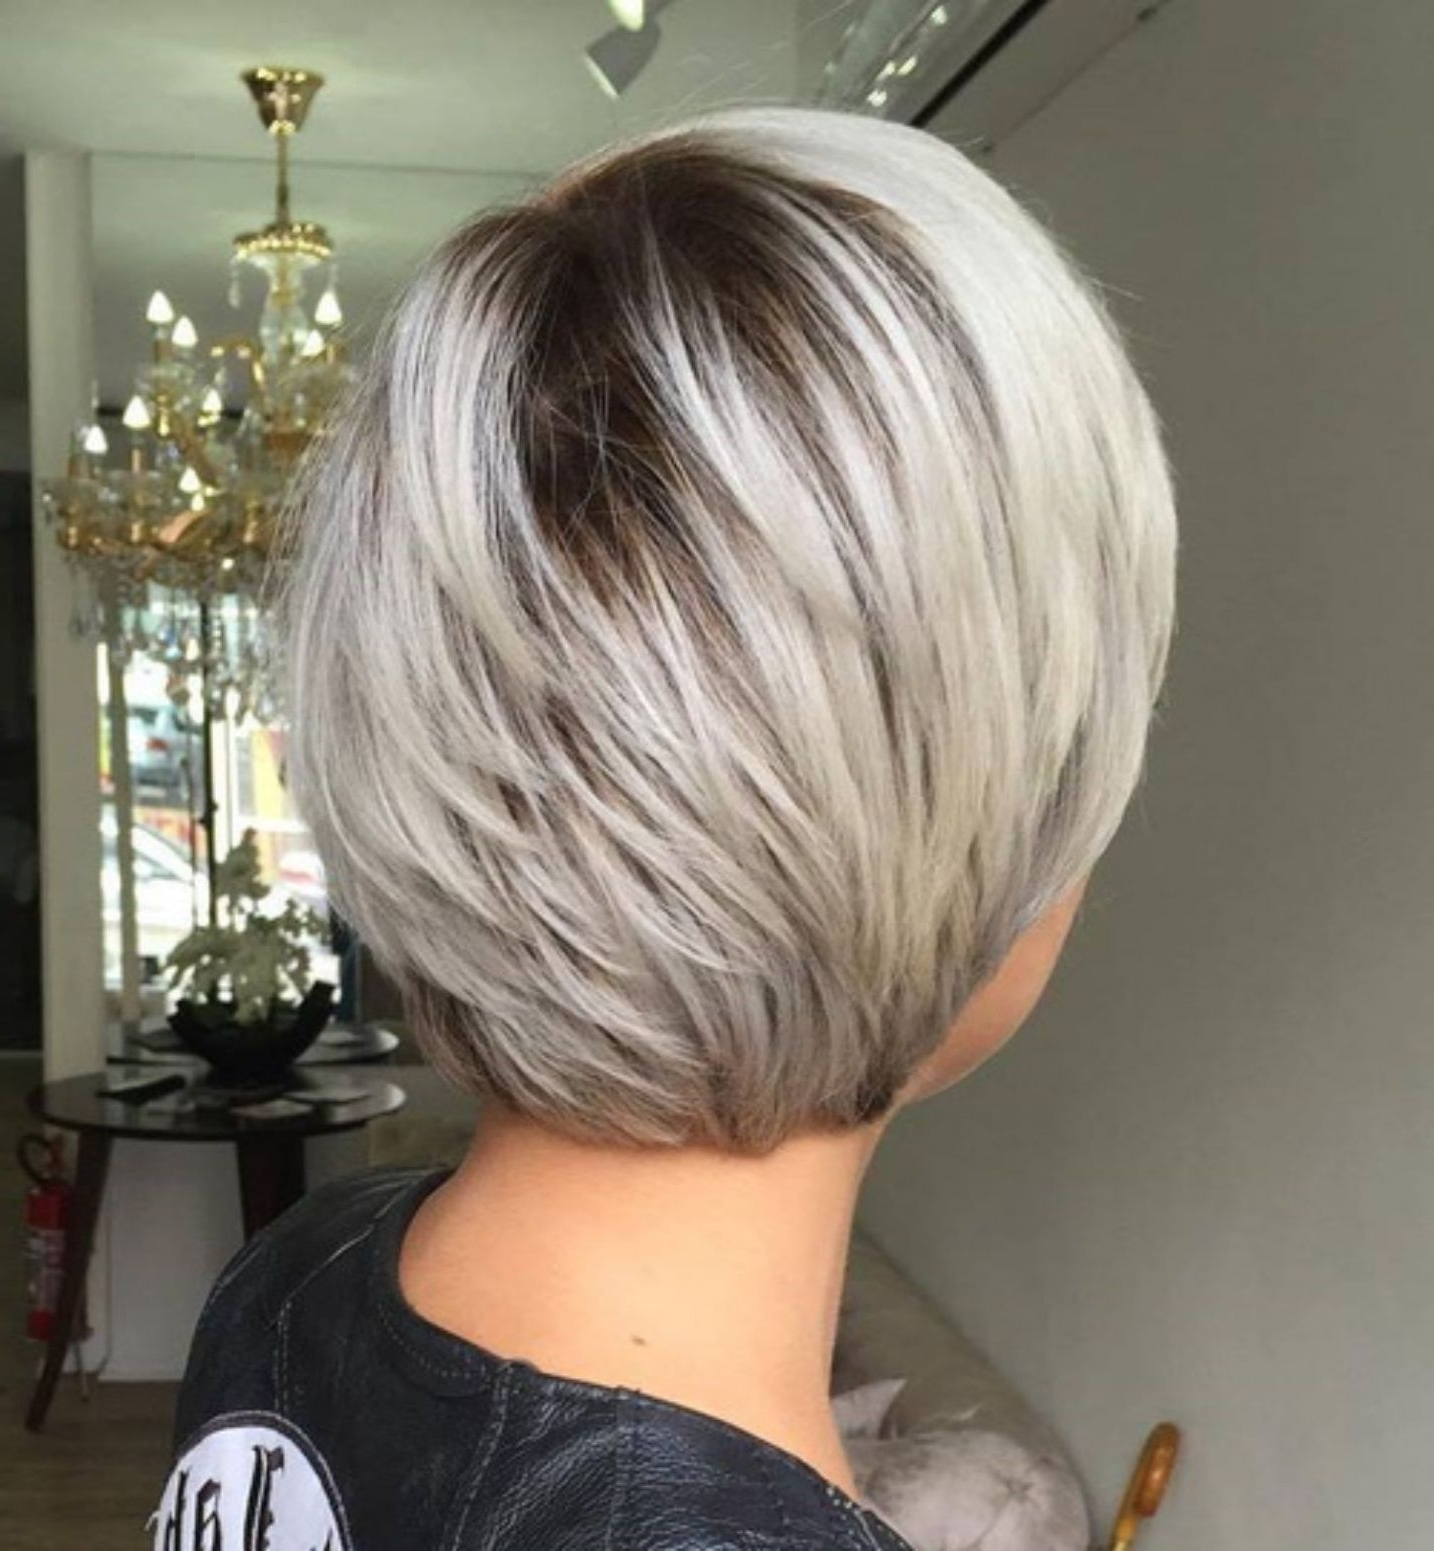 60 Classy Short Haircuts And Hairstyles For Thick Hair (View 7 of 20)